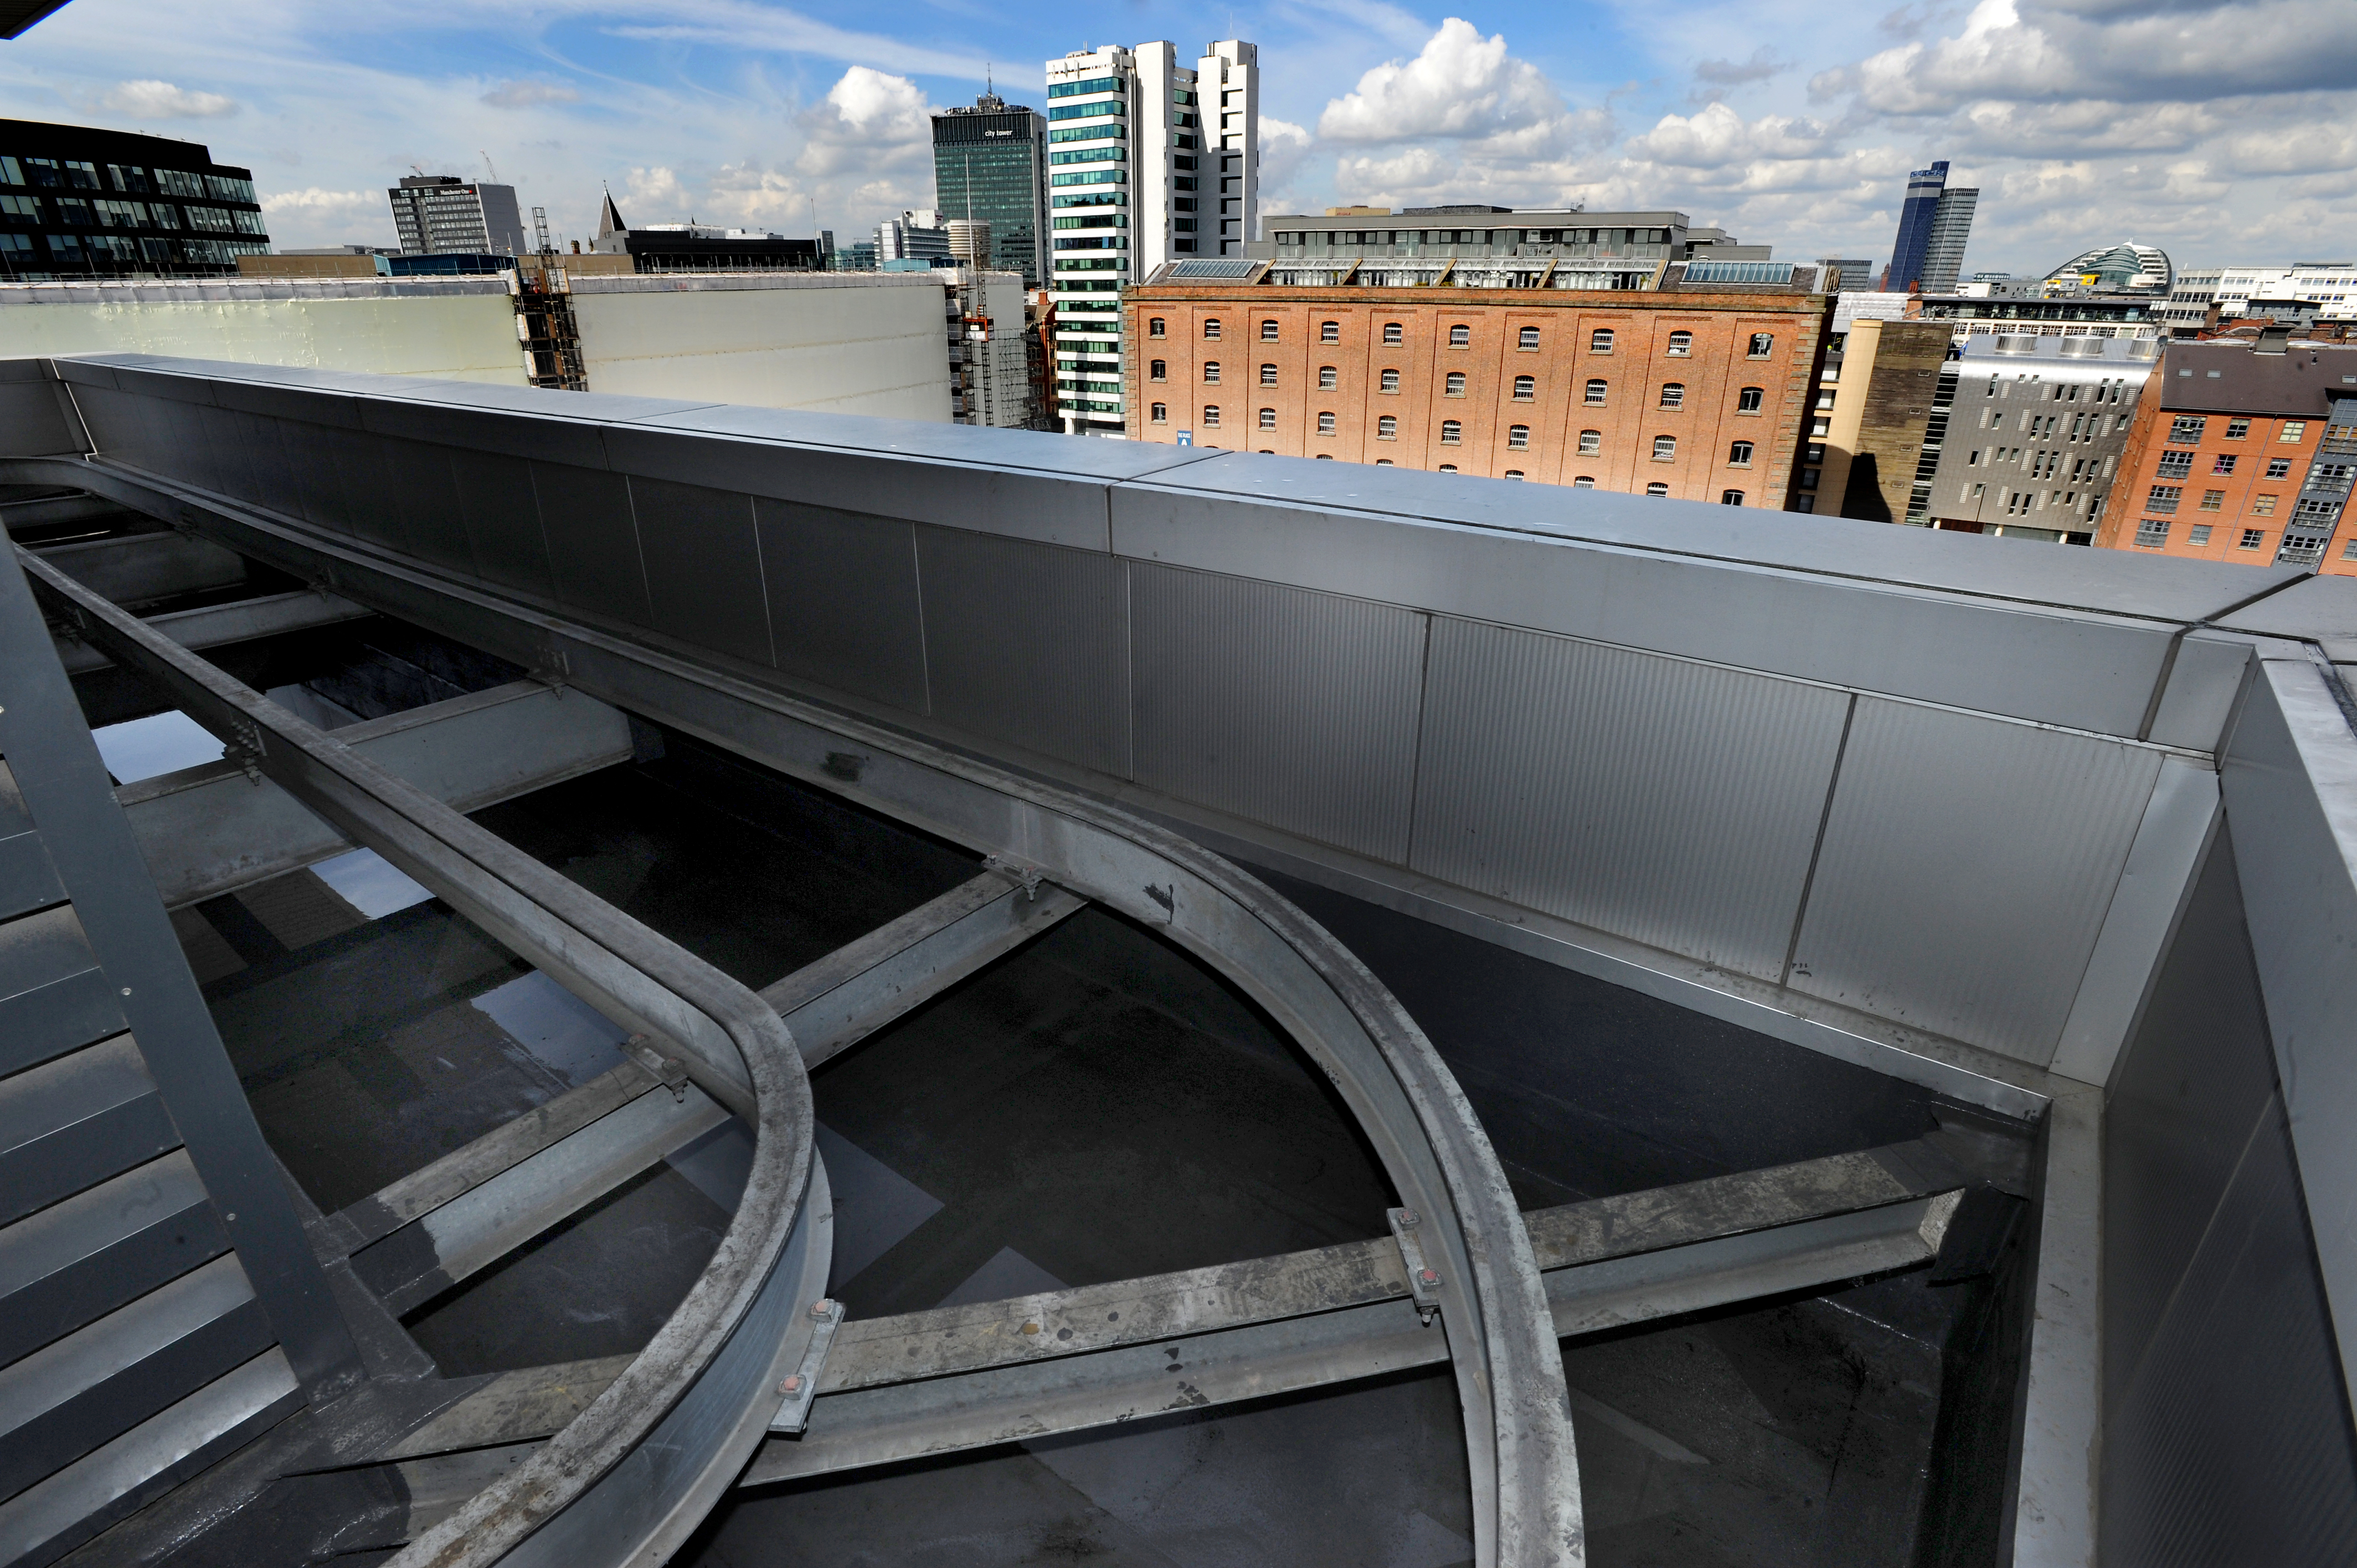 Piccadilly Gate offices, Manchester. Re-sealed roof by Castle Construction with Kemper Systems. Picture by Paul Heyes, Wednesday April 13, 2016.